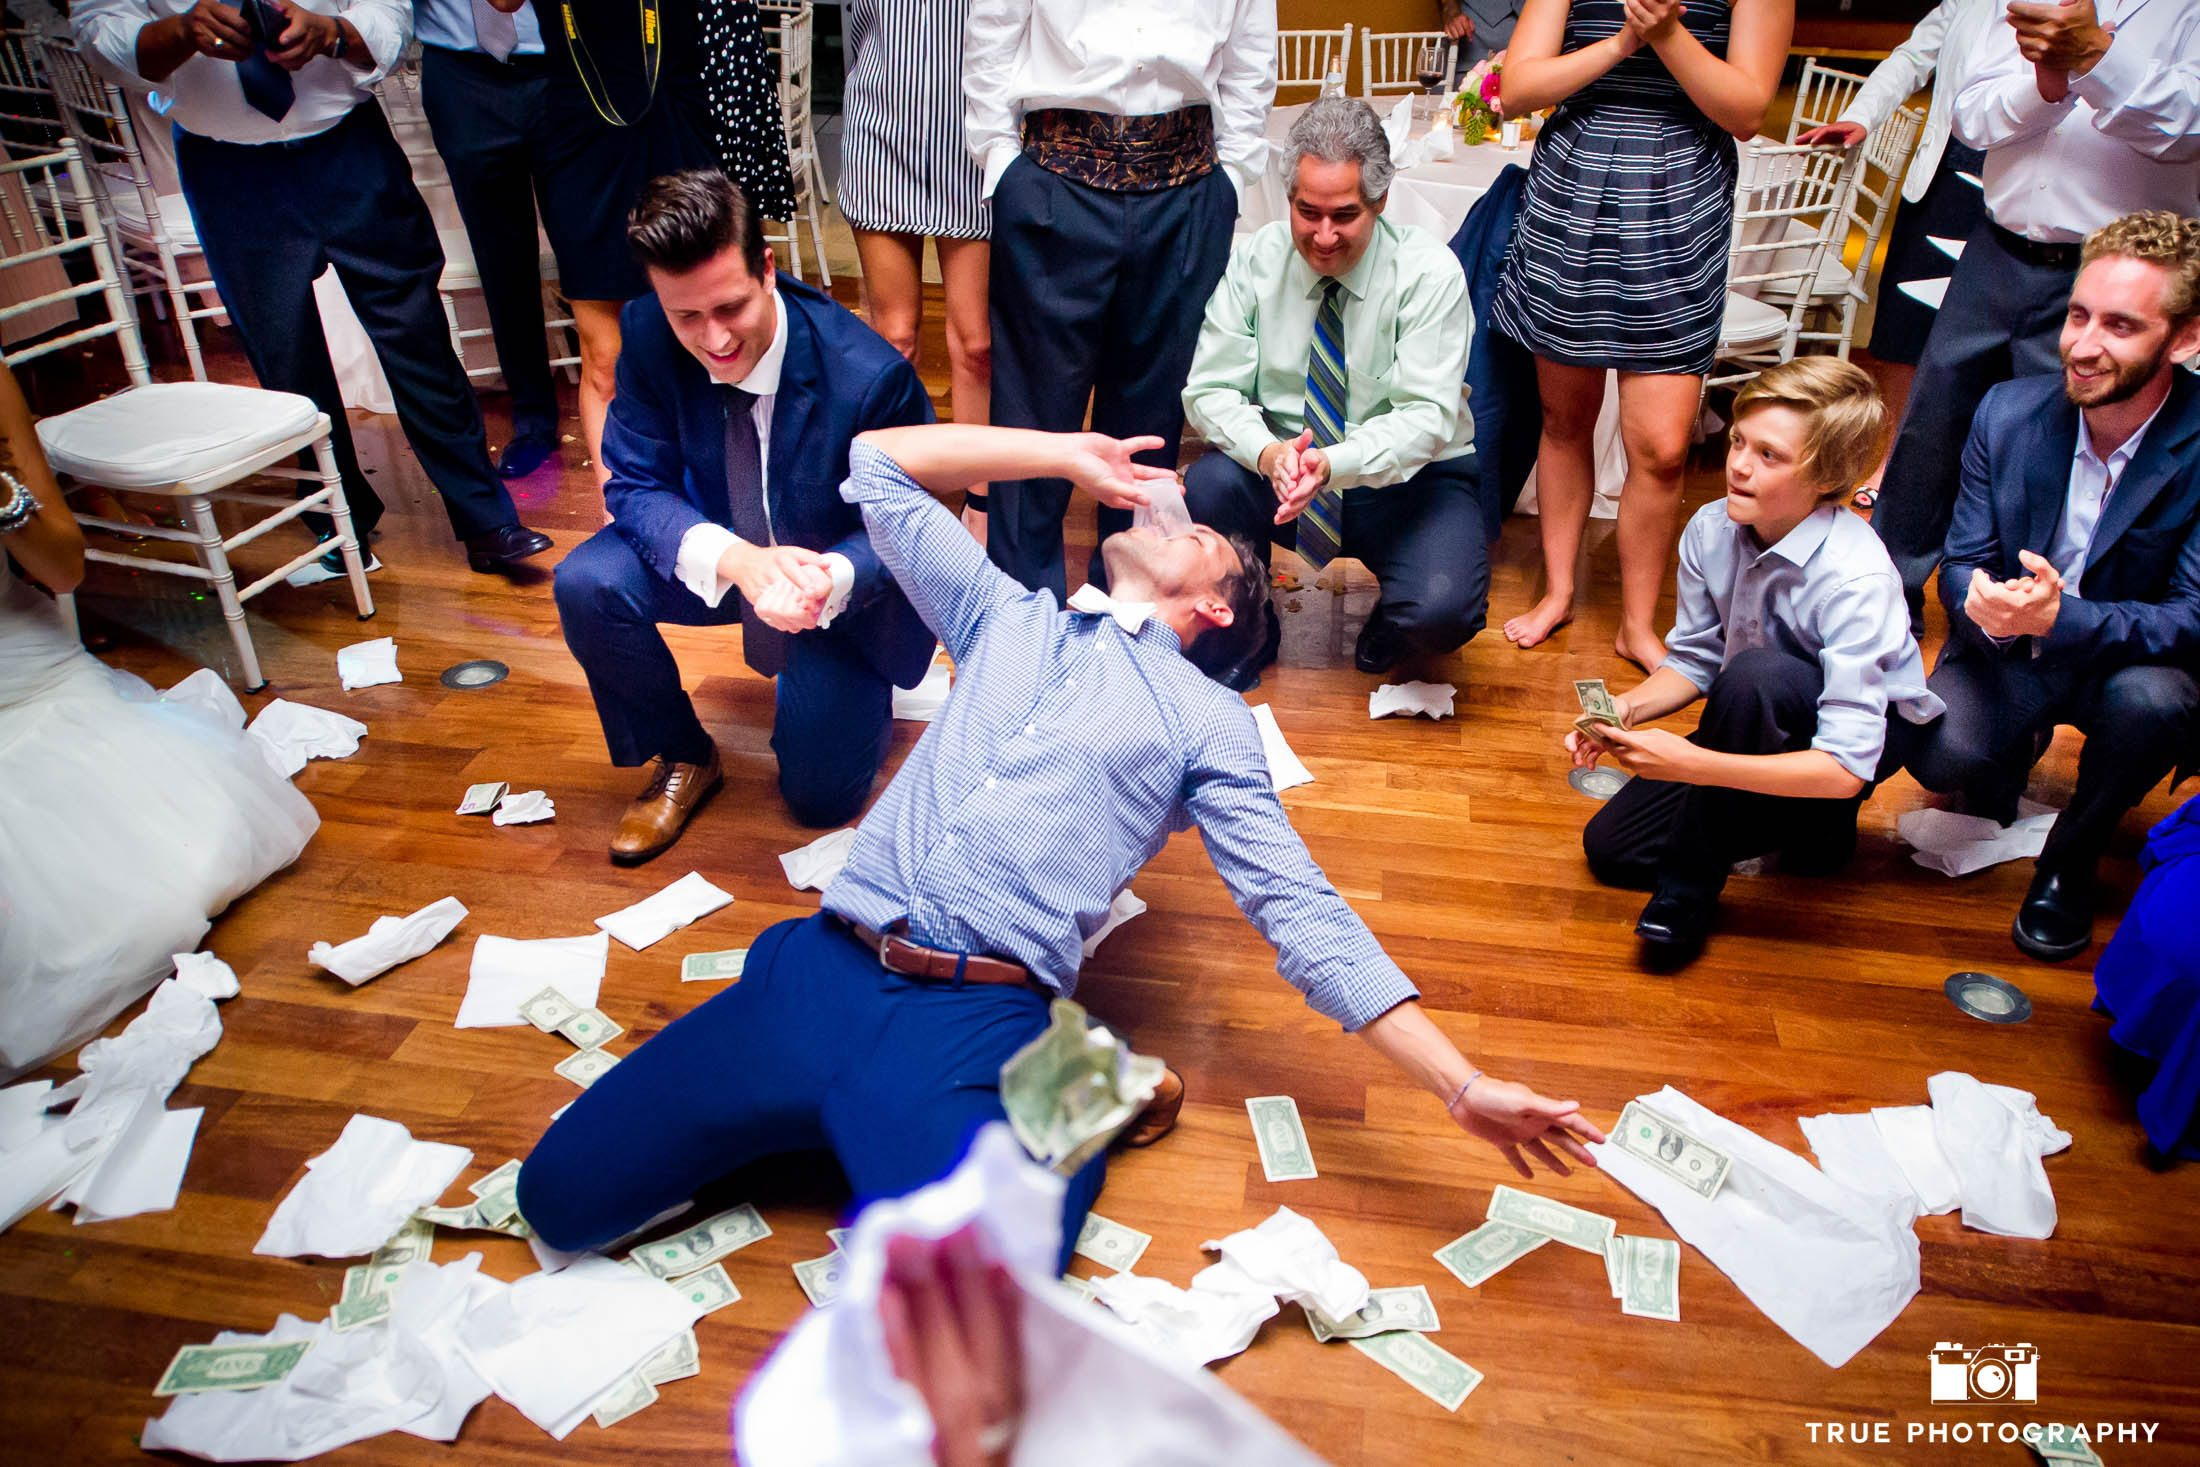 Groom takes shot and has money throw at him during wedding reception